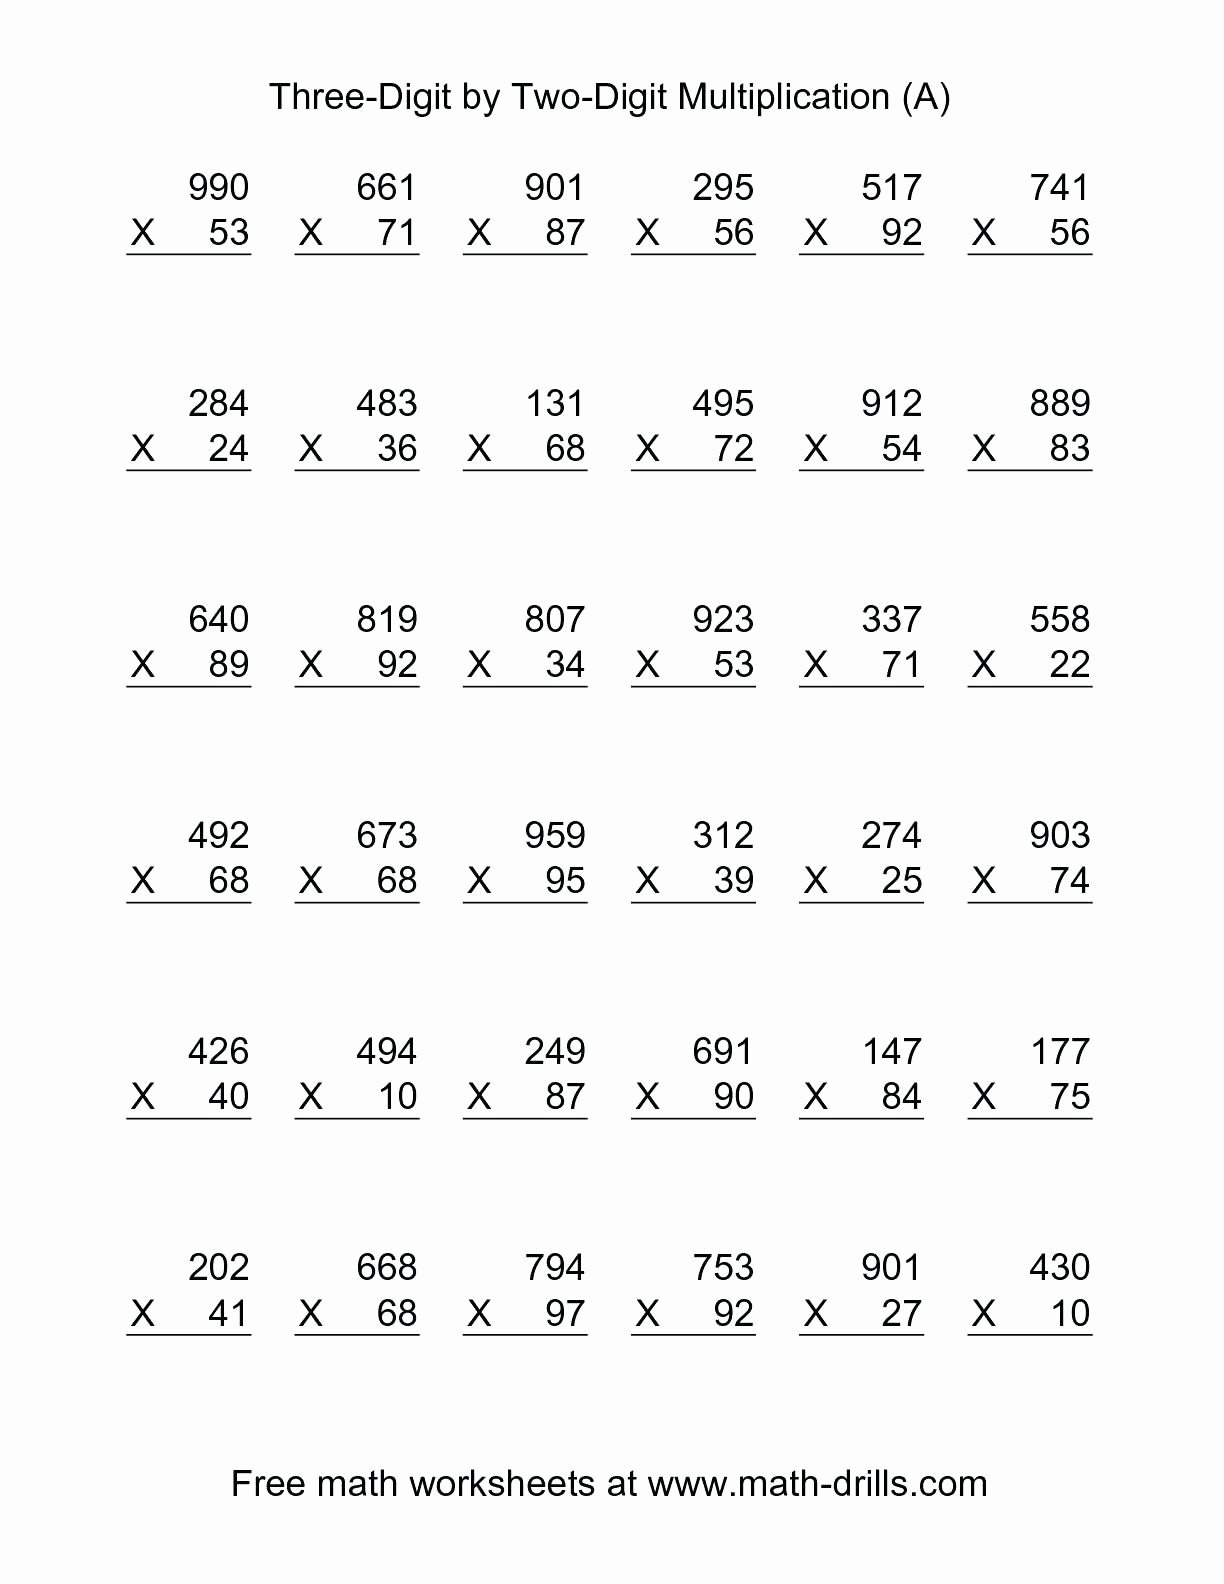 5th Grade Math Multiplication Worksheets Inspirational 5th Grade Multiplication Worksheets for Printable In 2020